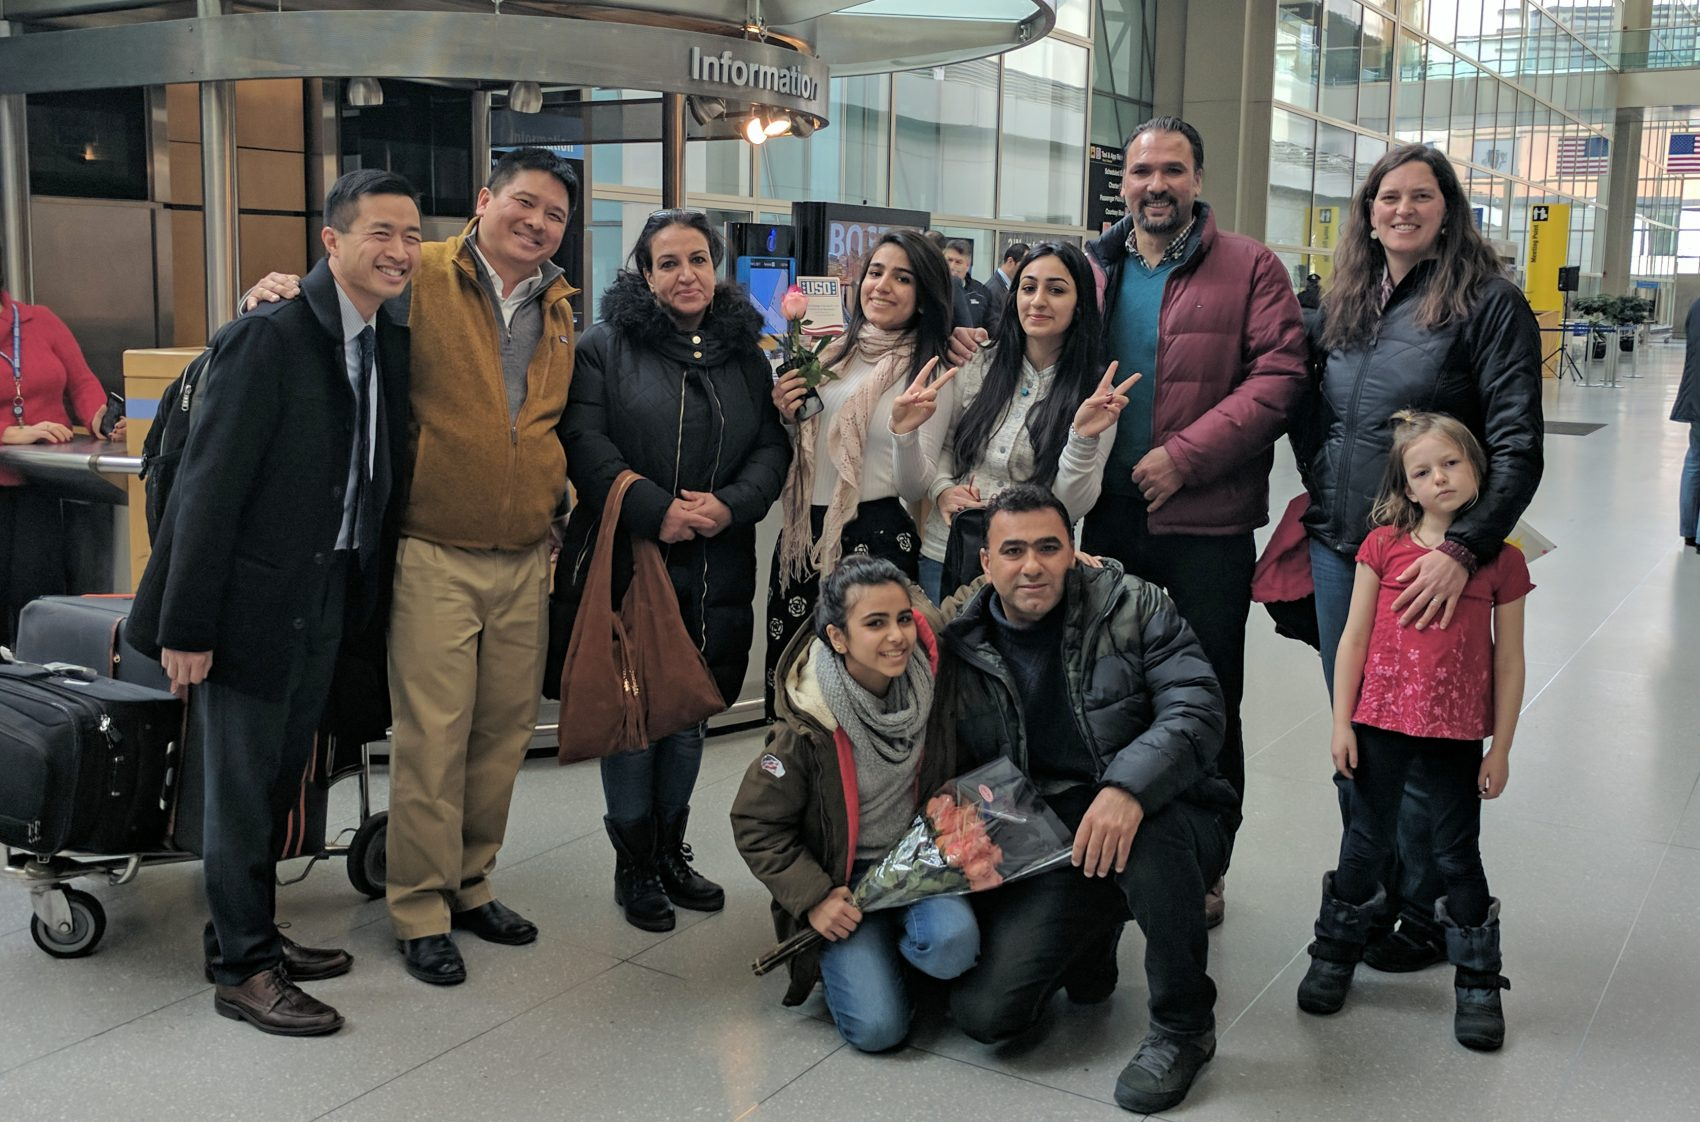 Banah Al-Hanfy, third from right, at Logan International Airport with her family and the Maine residents who helped reunite them. (Courtesy of Brian Eng)